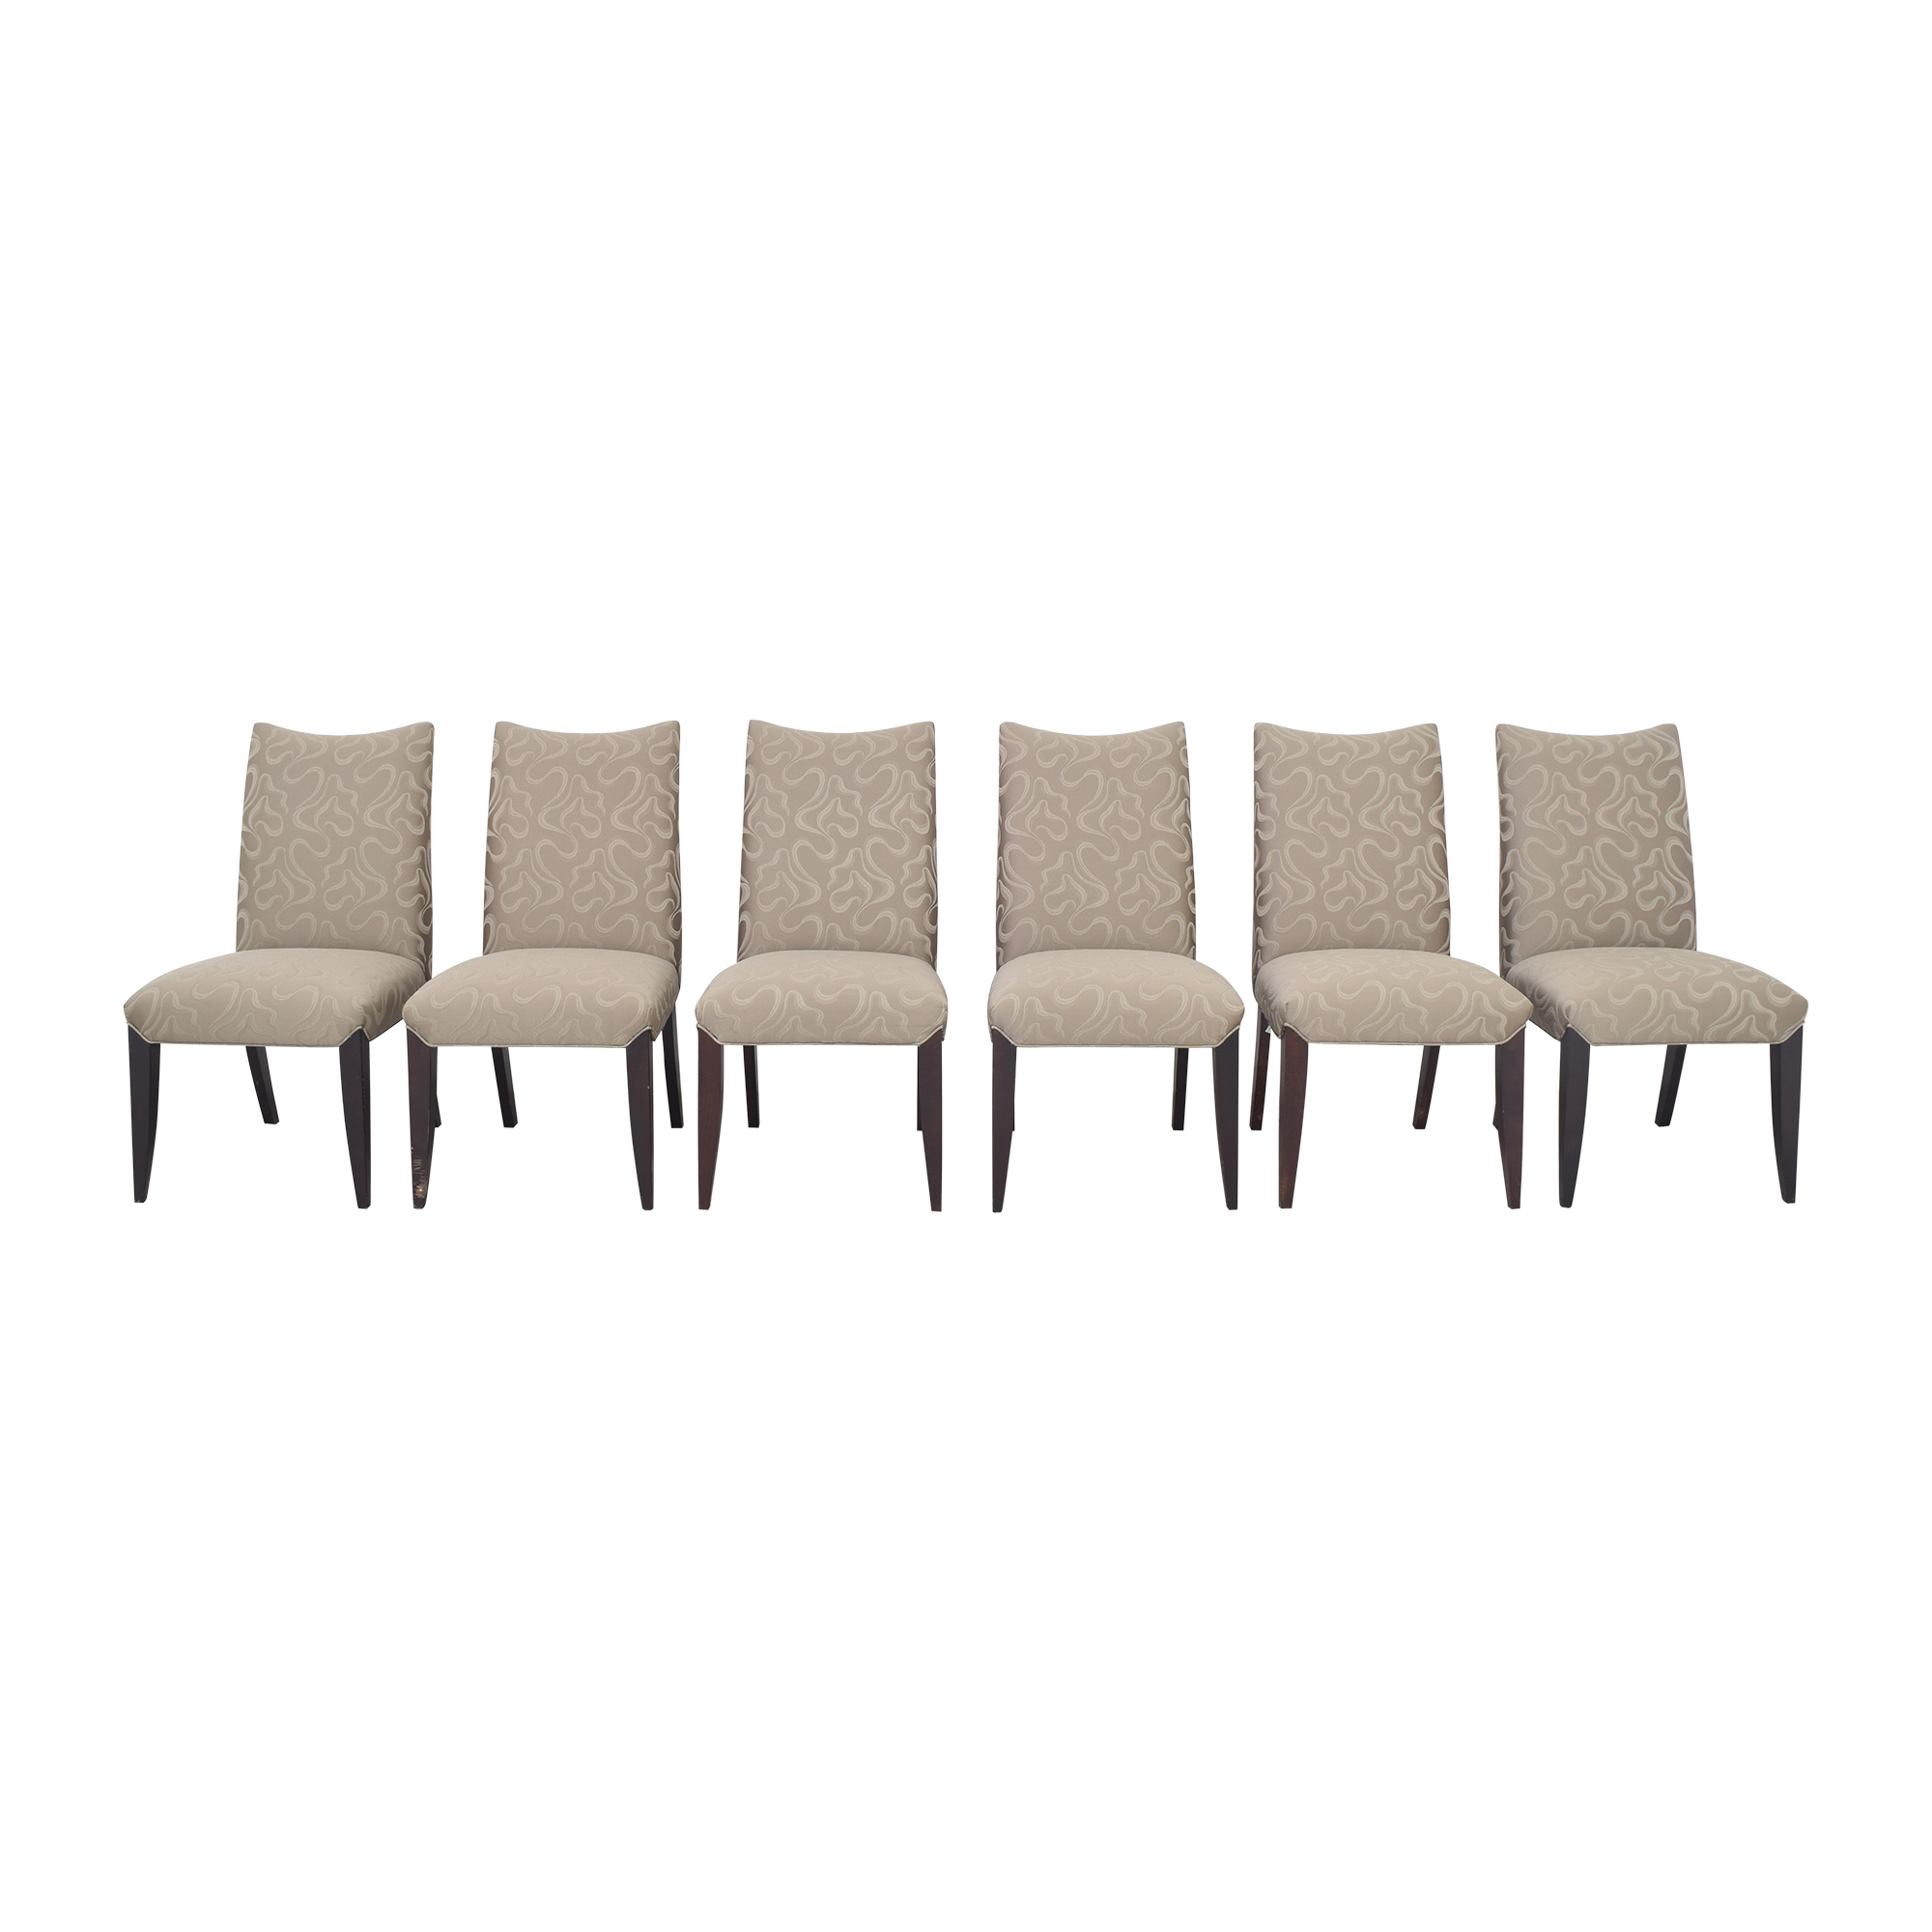 Precedent Furniture Precedent Furniture Upholstered Dining Chairs dimensions